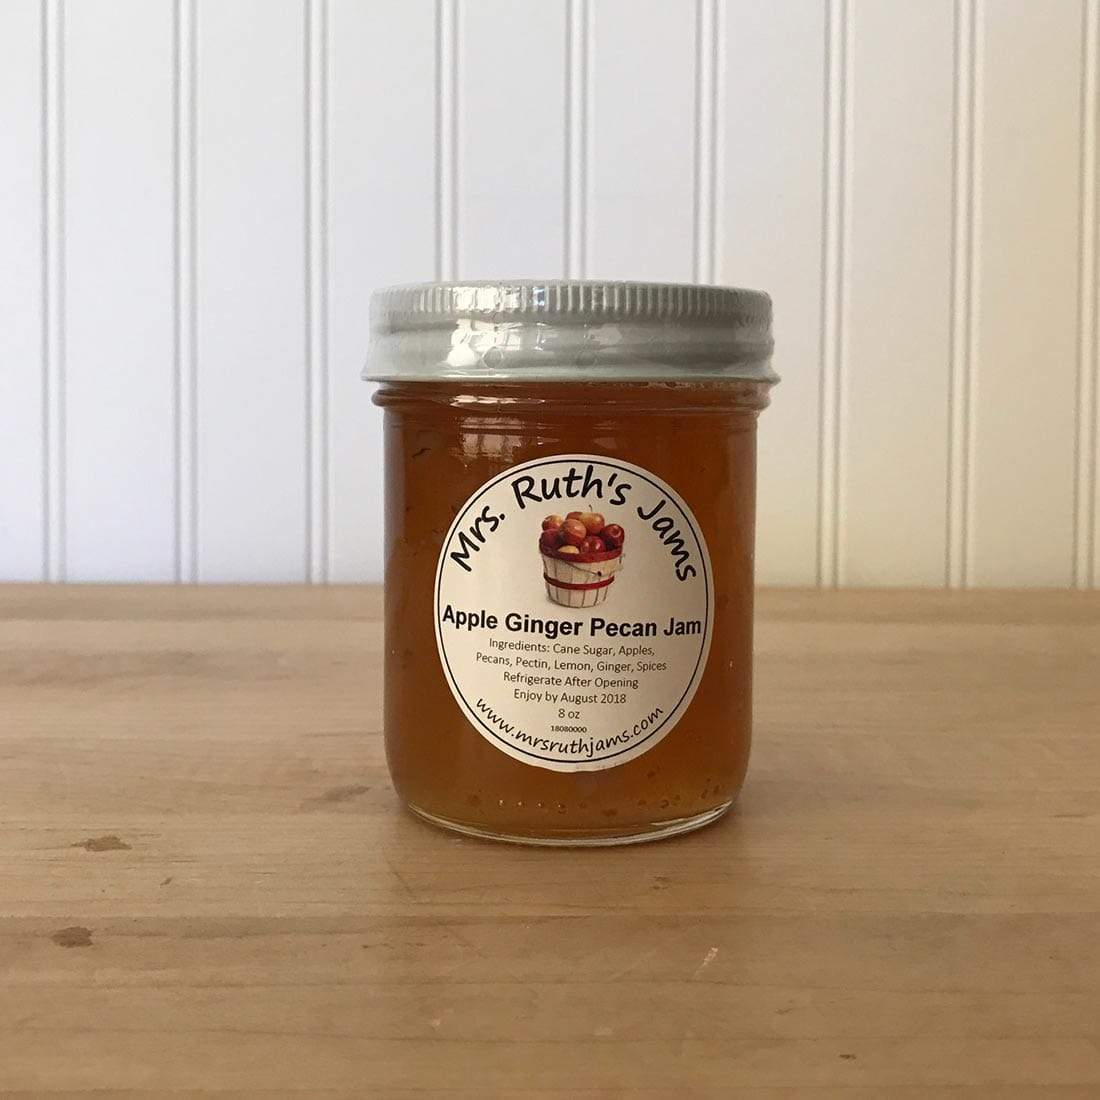 Mrs. Ruth's Jams Mrs. Ruths Apple Ginger Pecan Jam 8 oz